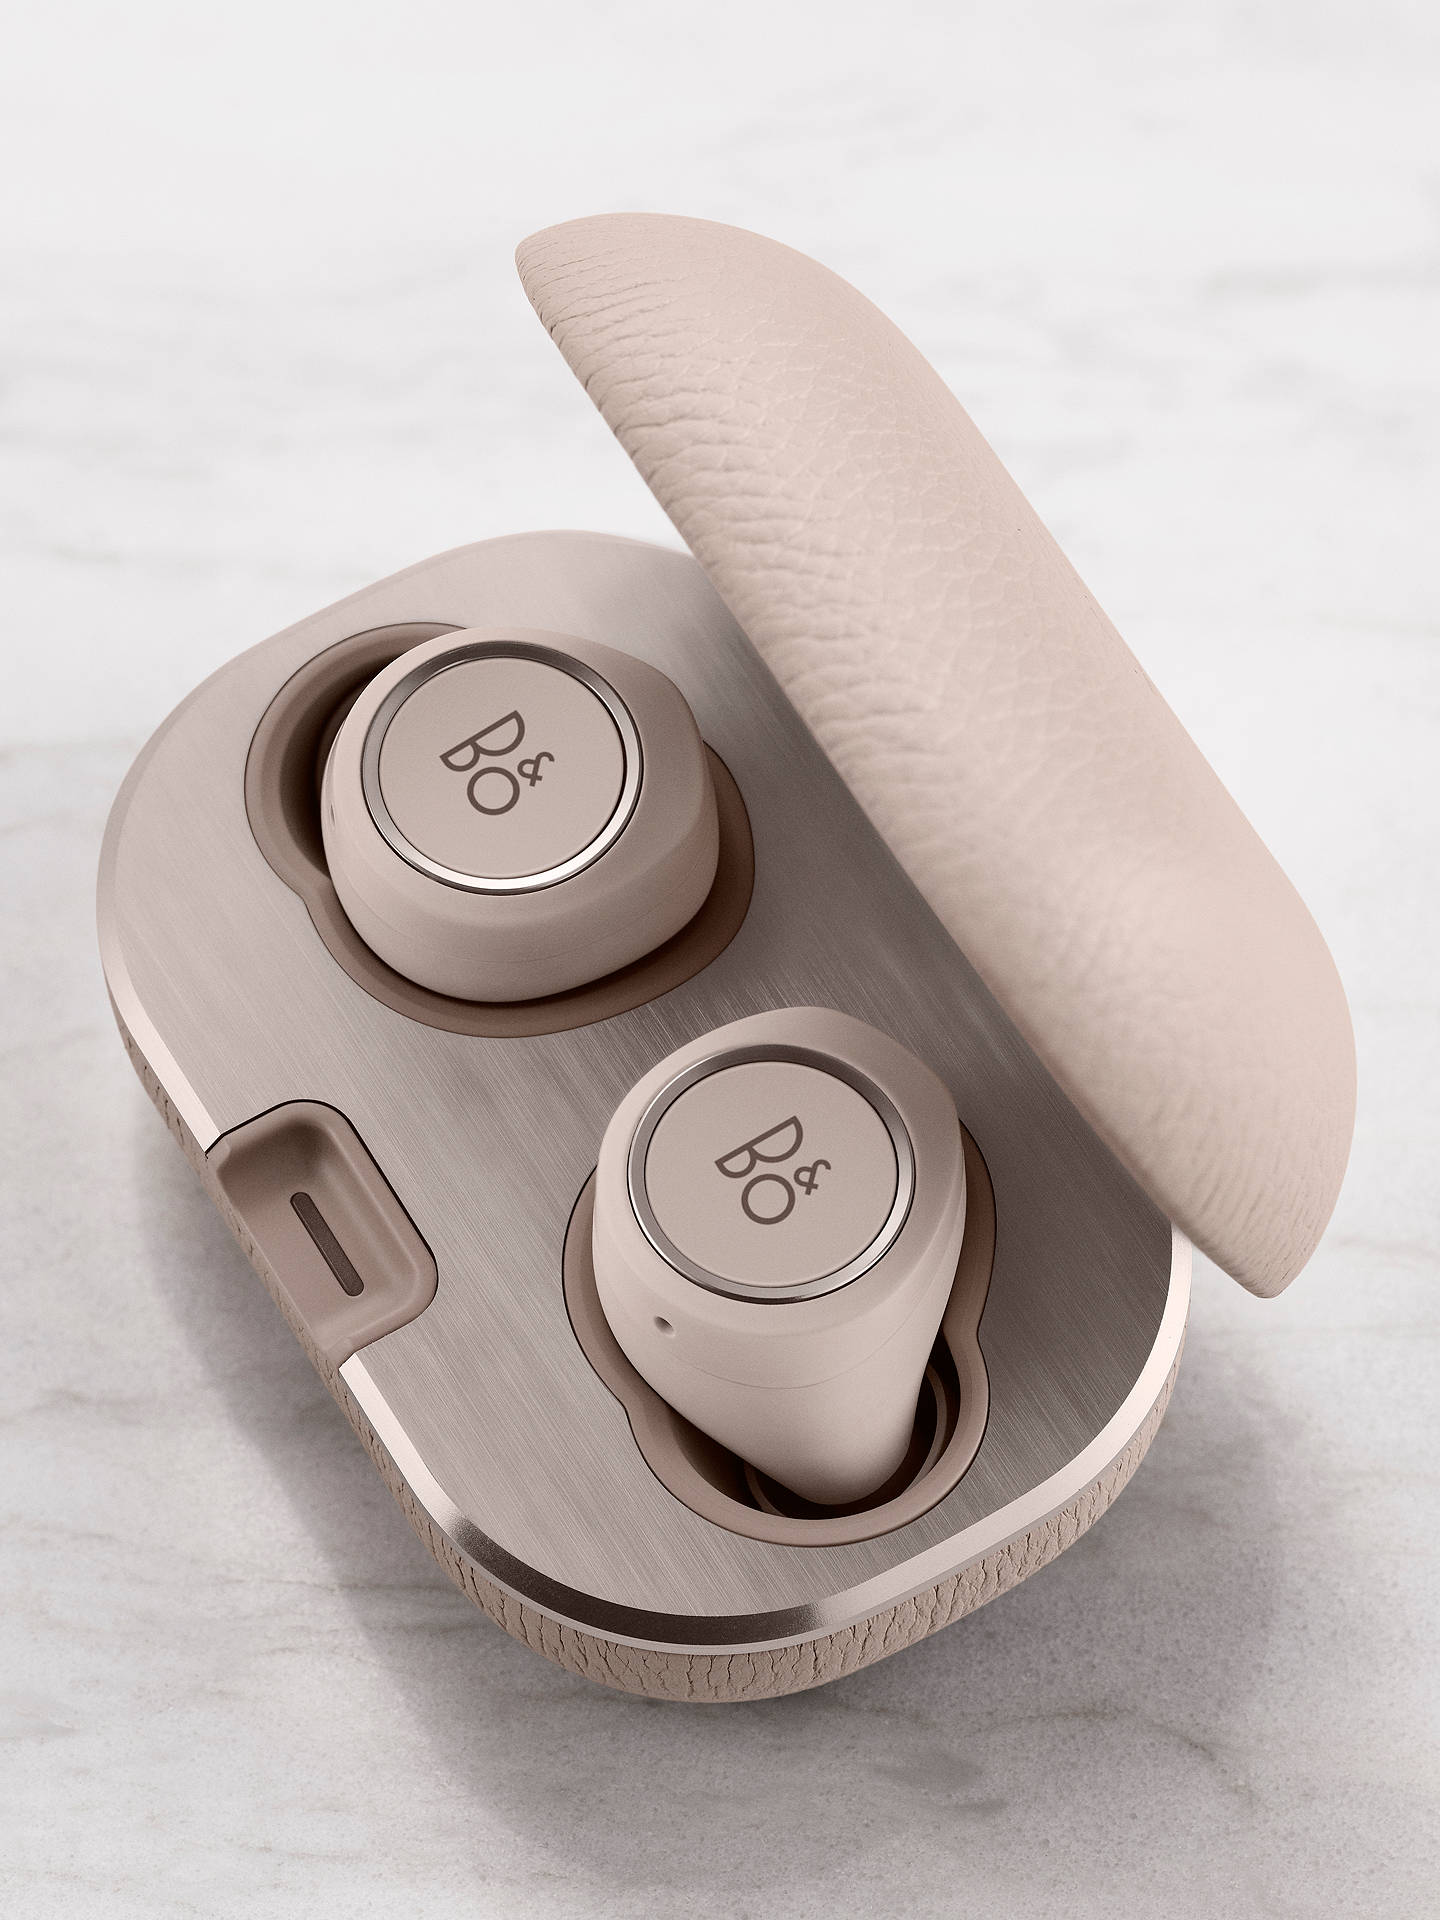 Buy Bang & Olufsen Beoplay E8 2.0 True Wireless Bluetooth In-Ear Headphones with Mic/Remote, Limestone Online at johnlewis.com